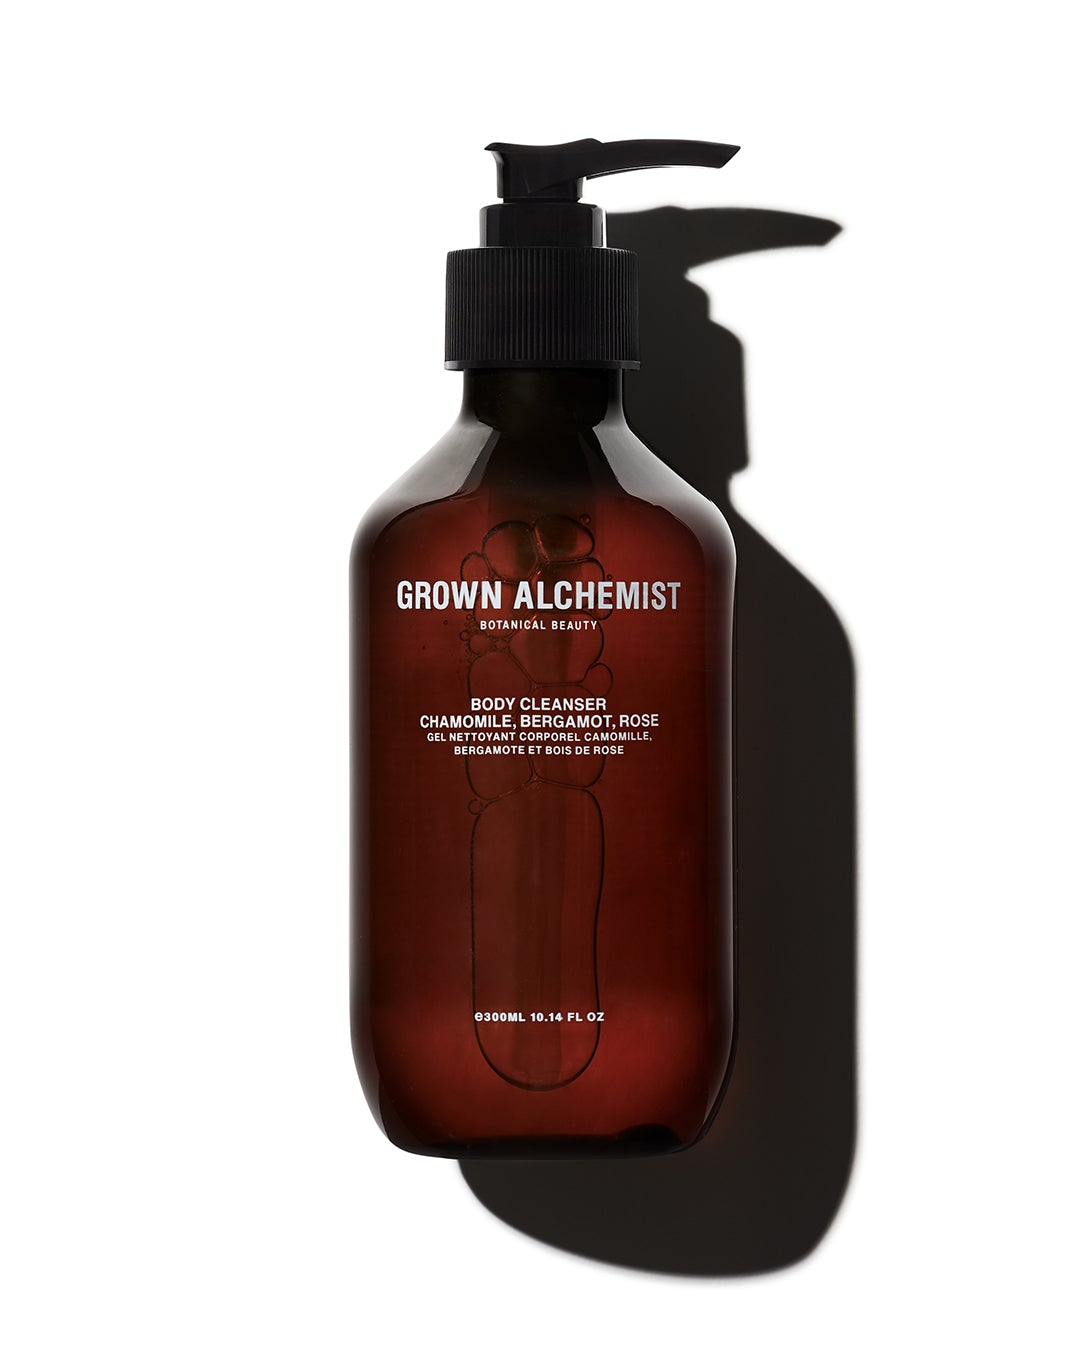 GROWN ALCHEMIST | BODY CLEANSER